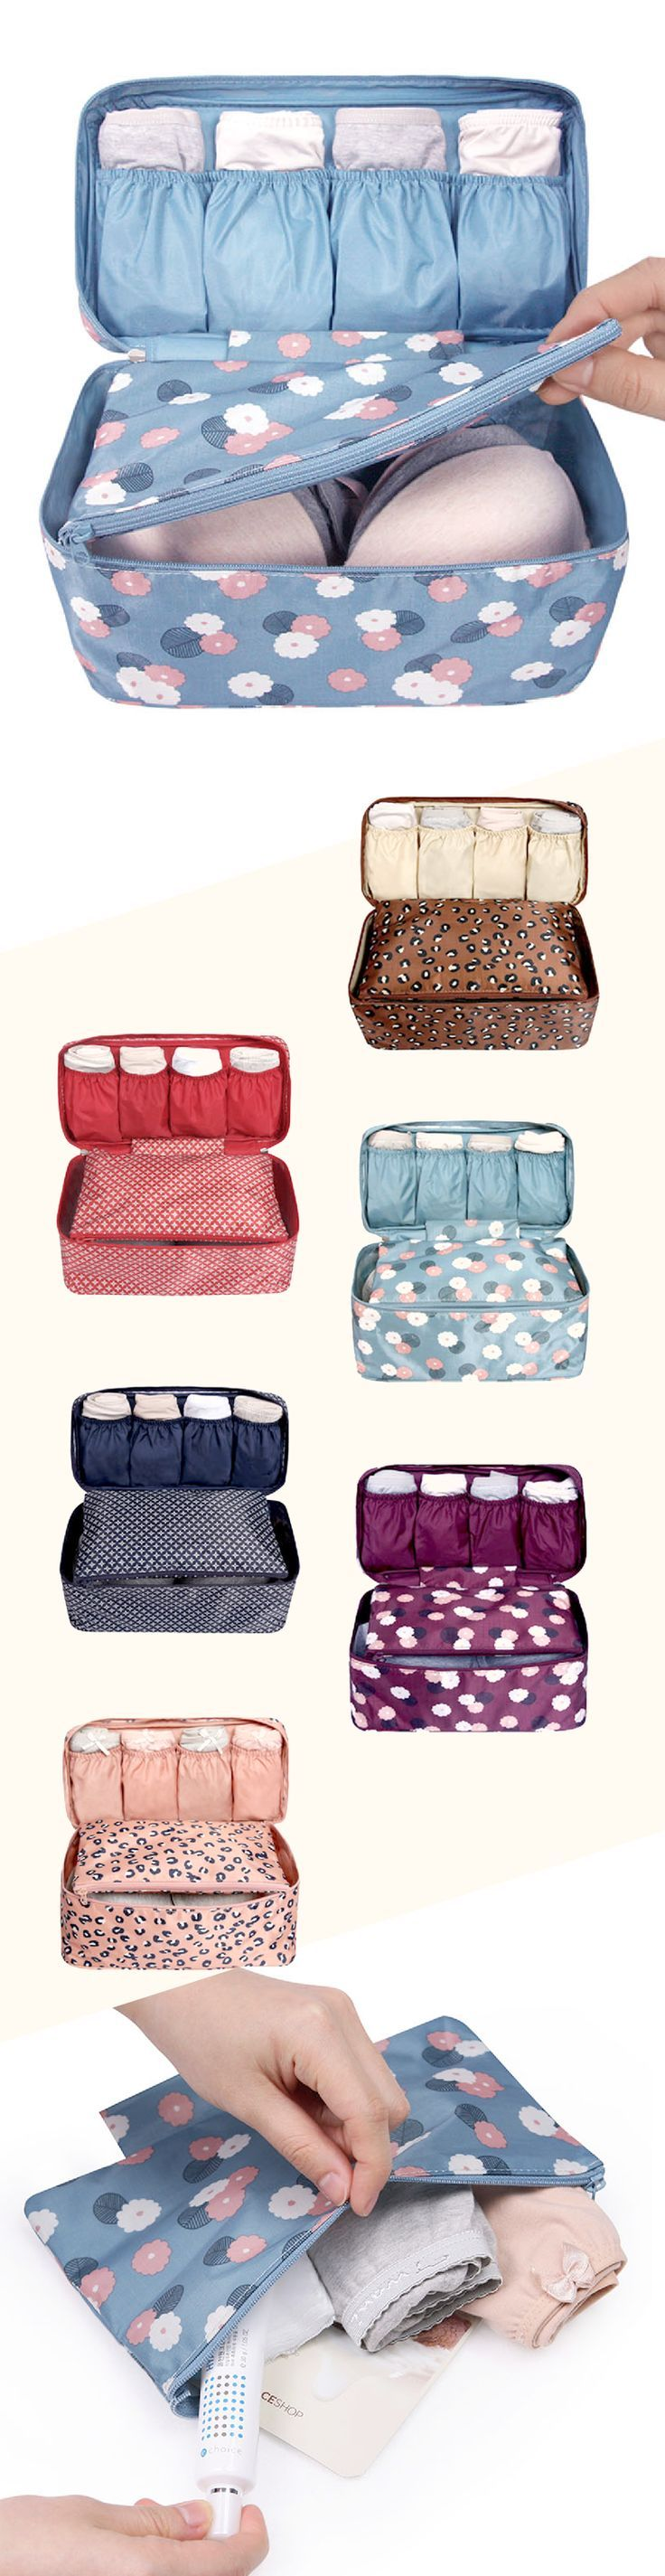 Wow! These underwear pouches are so cute. Keep your underwear and bras all in one, organized place while traveling. Fits 4-6 underwear and 4-6 bras! Includes a detachable pouch perfect for storing already-worn underwear. Includes handle for easy carrying, and a waterproof exterior. Comes in 2 different sizes, and 6 different patterns!: